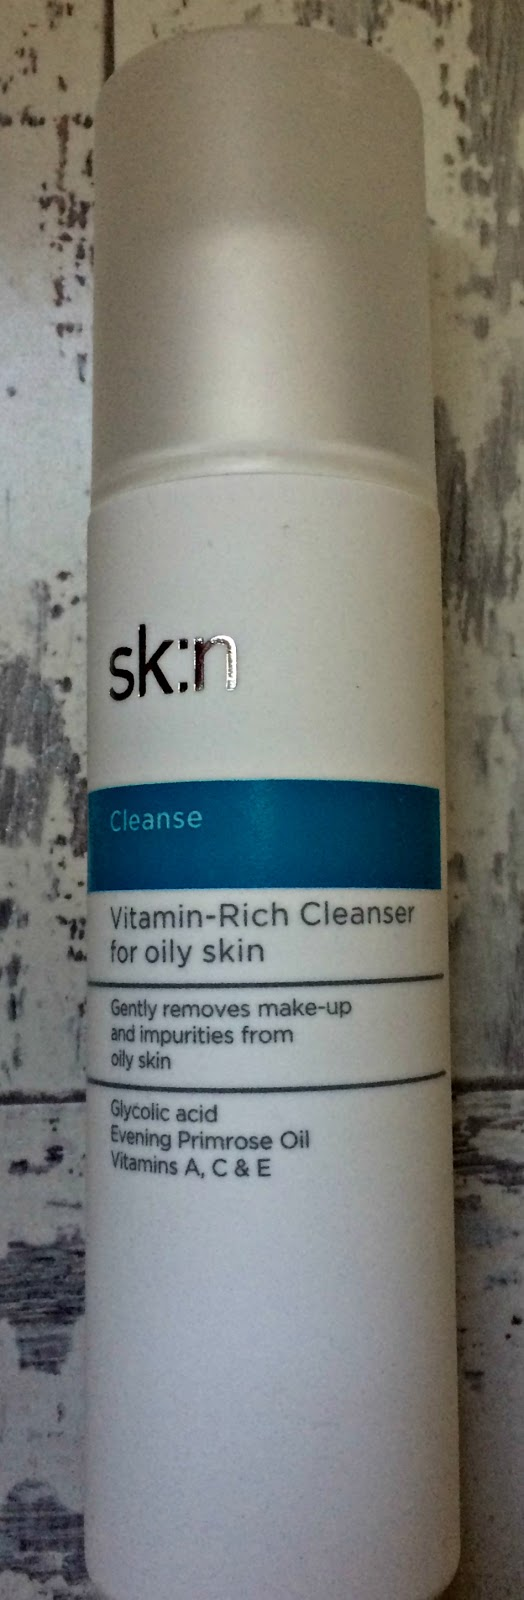 sk:n Cleanse: Vitamin-Rich Cleanser for oily skin